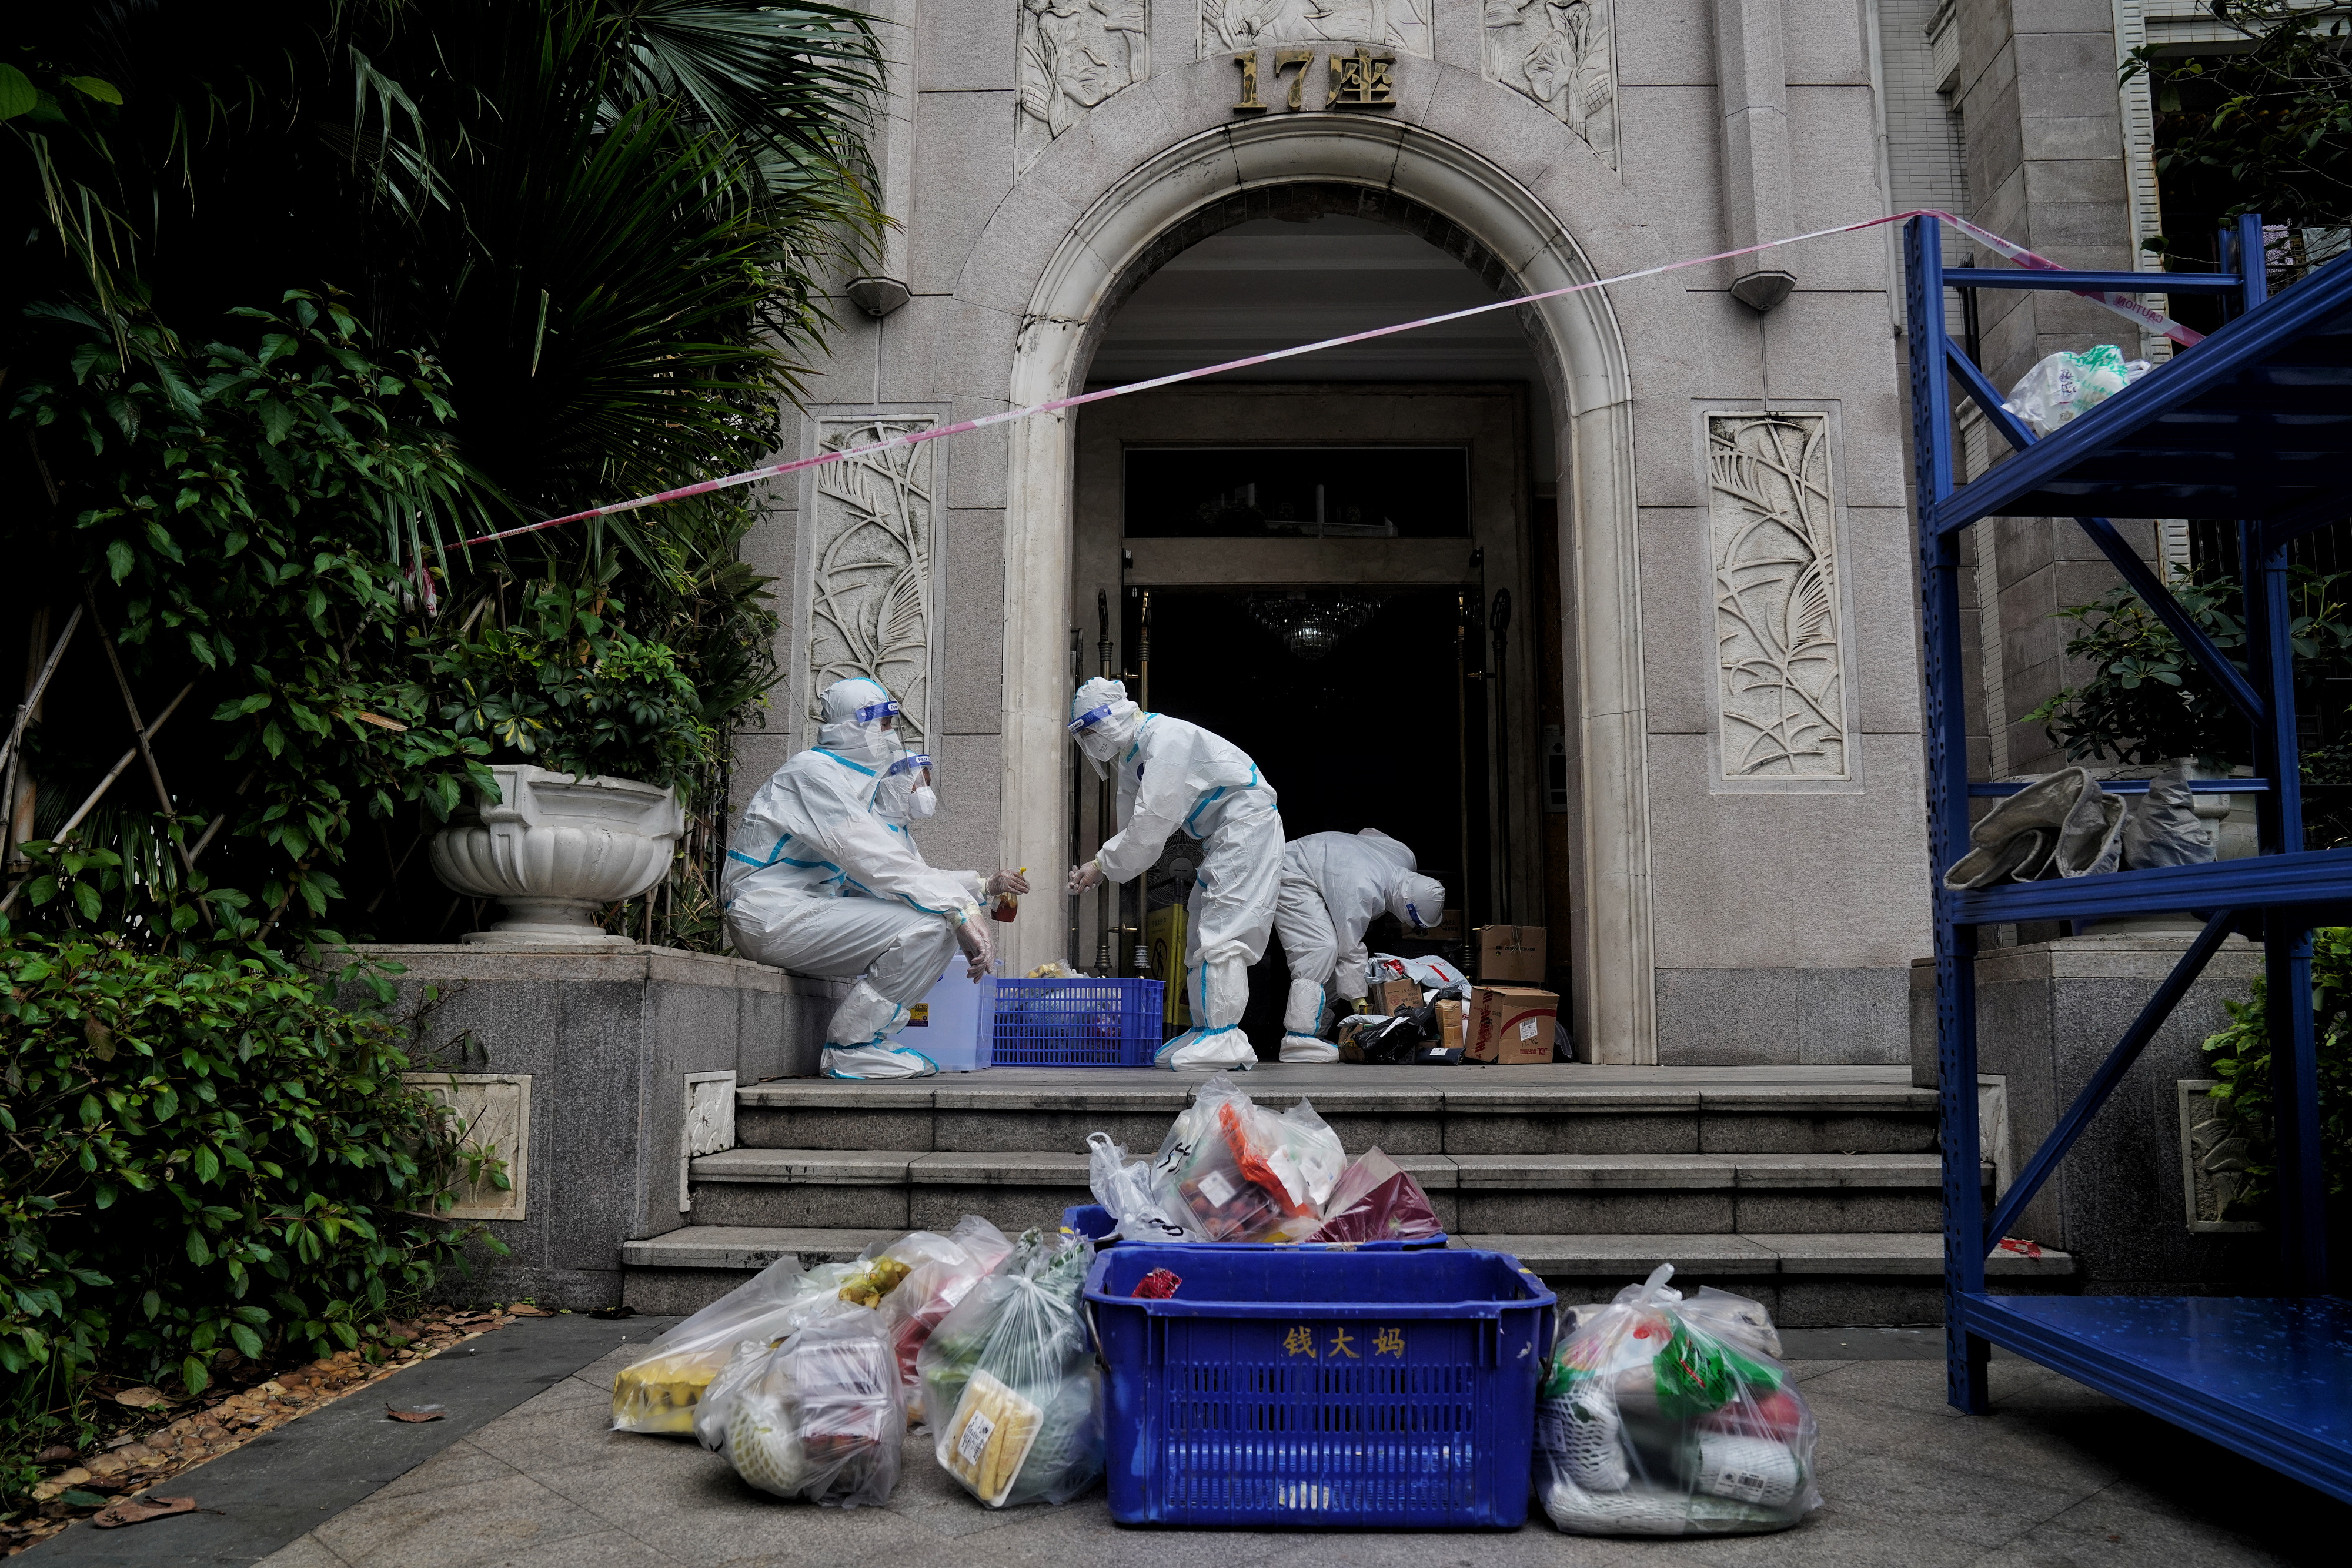 Property management workers in protective suits deliver goods to residents at a compound under lockdown due to the recent coronavirus disease (COVID-19) outbreak in Guangzhou, Guangdong province, China June 2, 2021. Picture taken June 2, 2021. China Daily via REUTERS